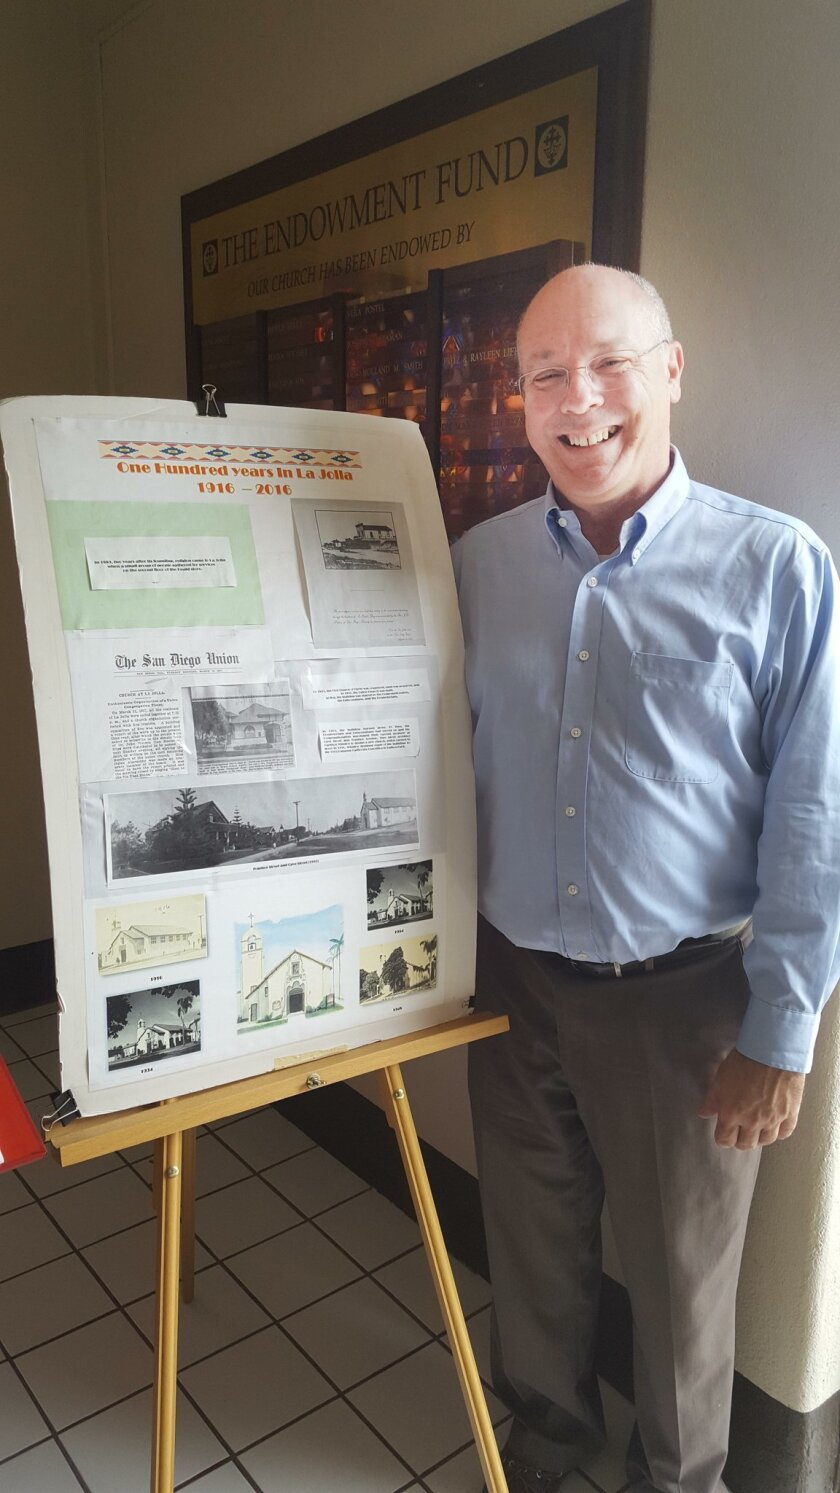 Pastor Sam Greening poses with an information board at the church entrance, which shows some highlights of the last 100 years.